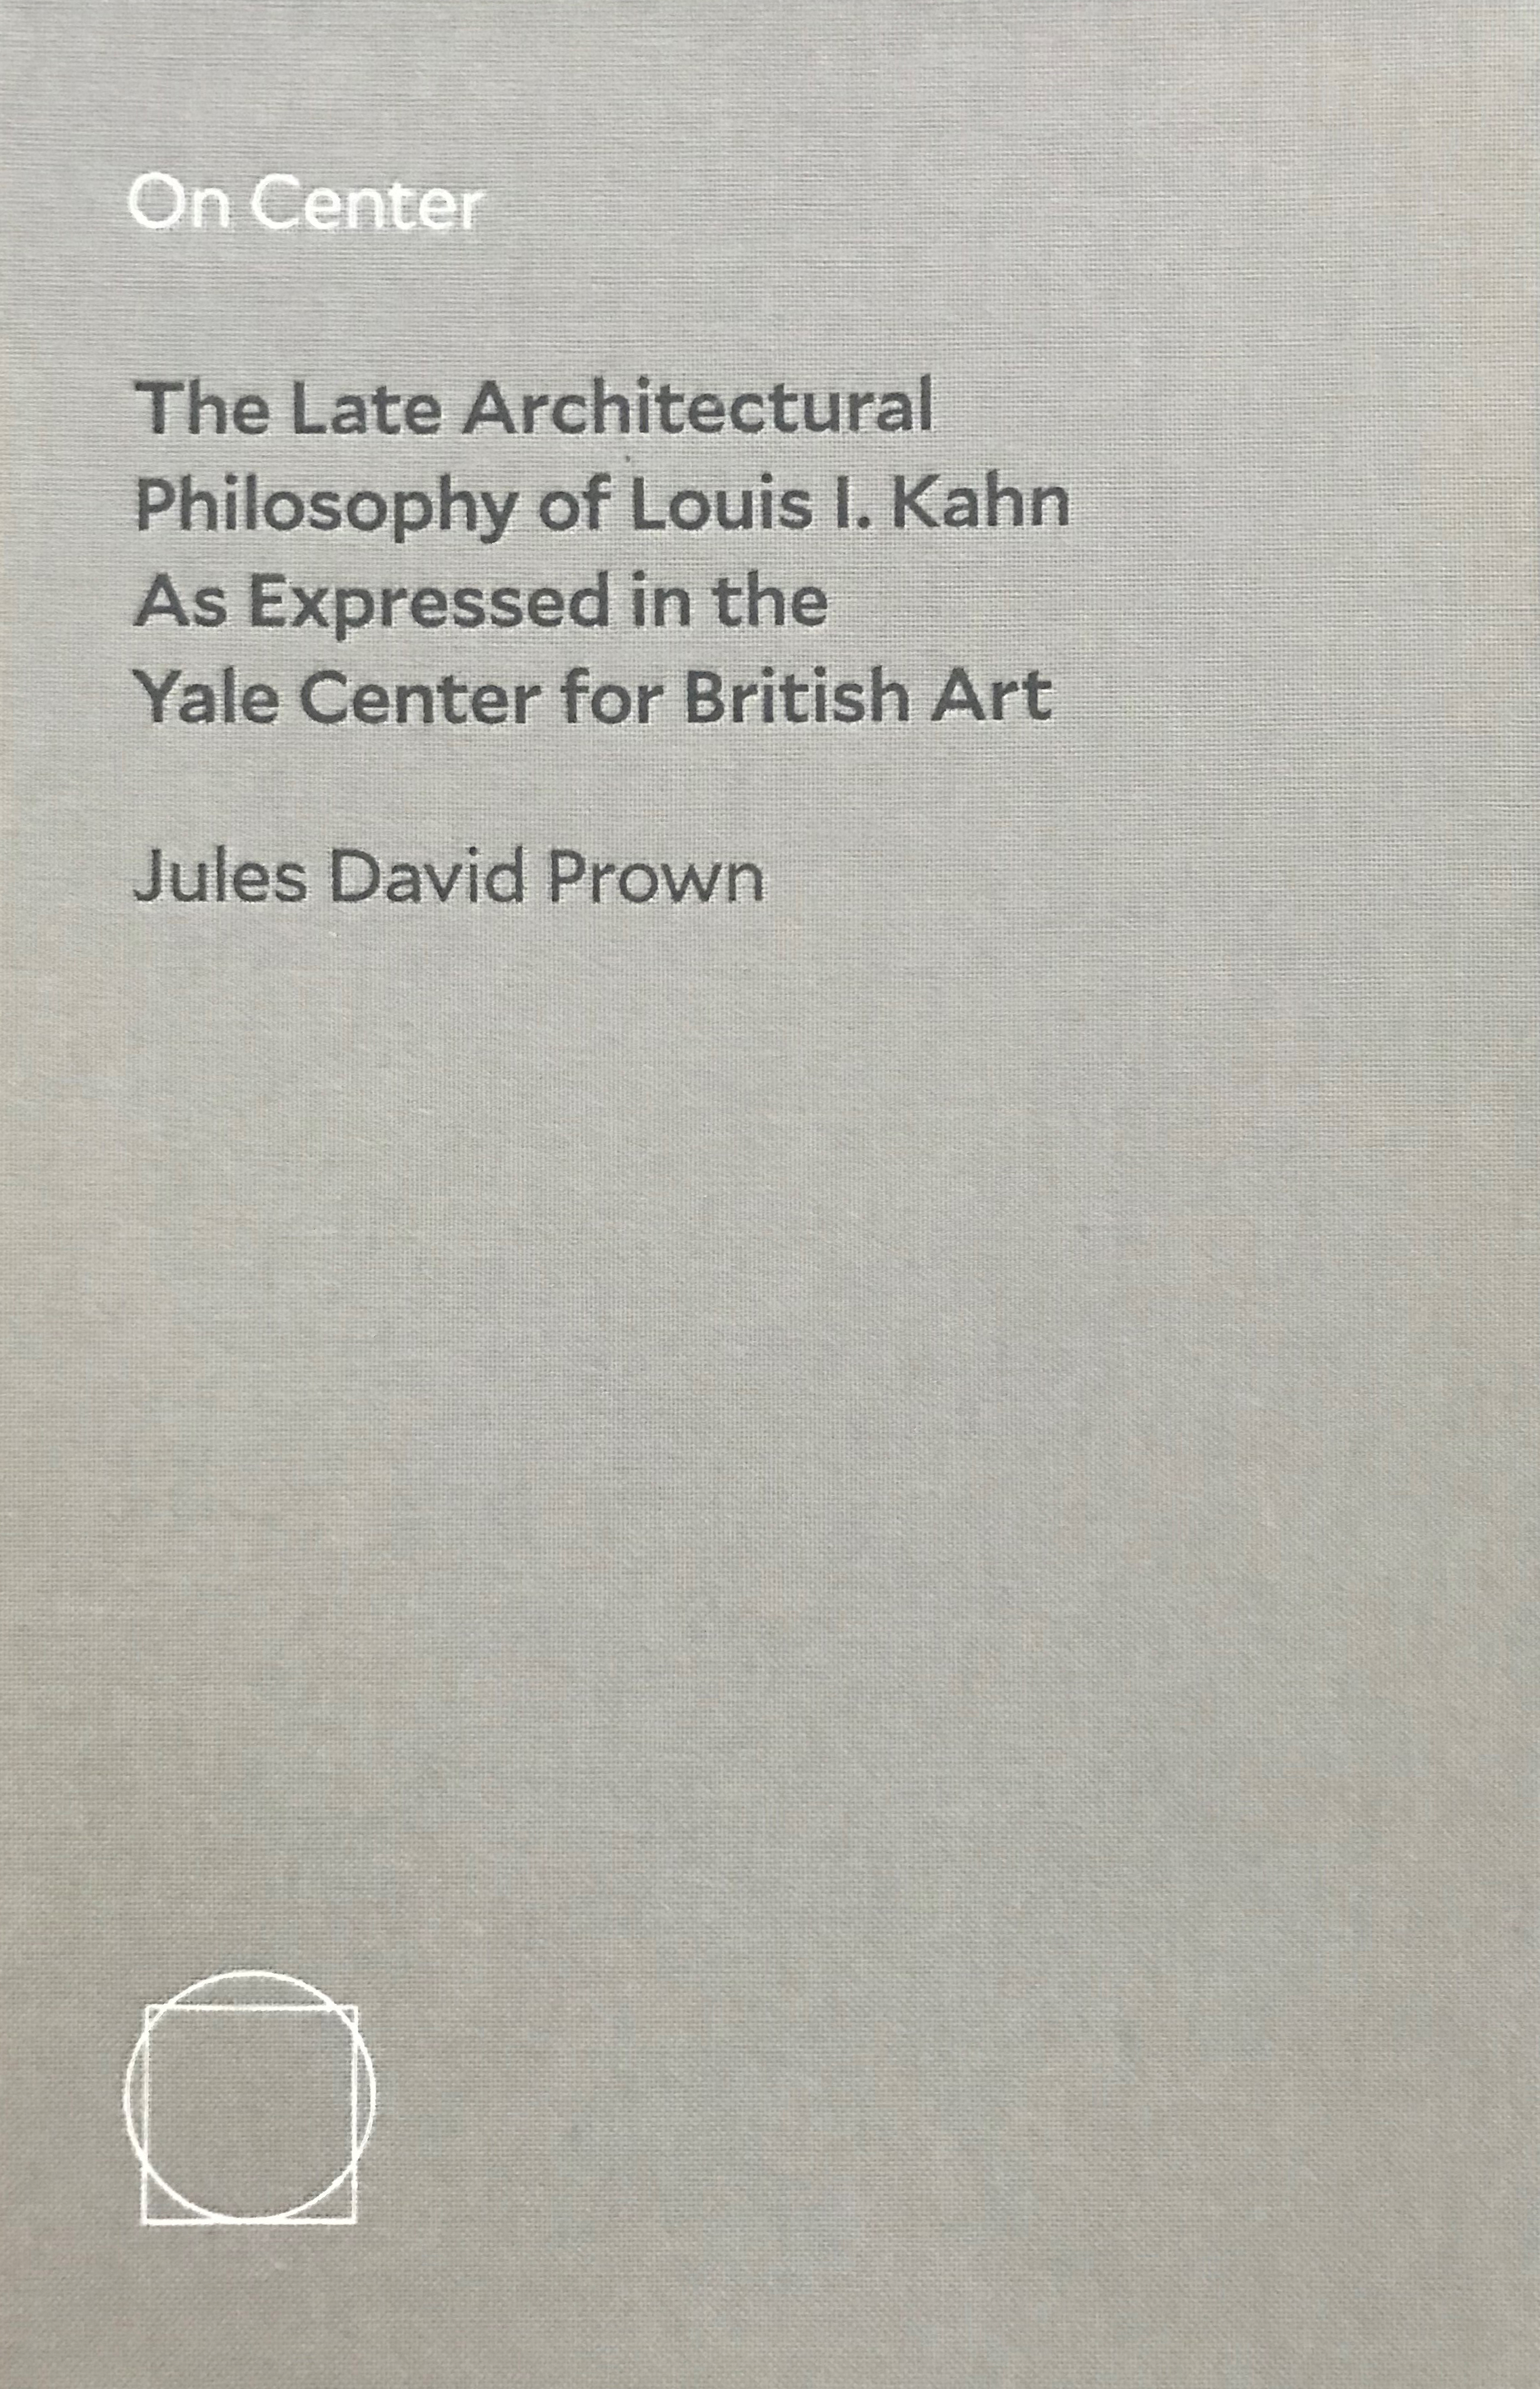 Cover, On Center: The Late Architectural Philosophy of Louis I. Kahn as Expressed in the Yale Center for British Art